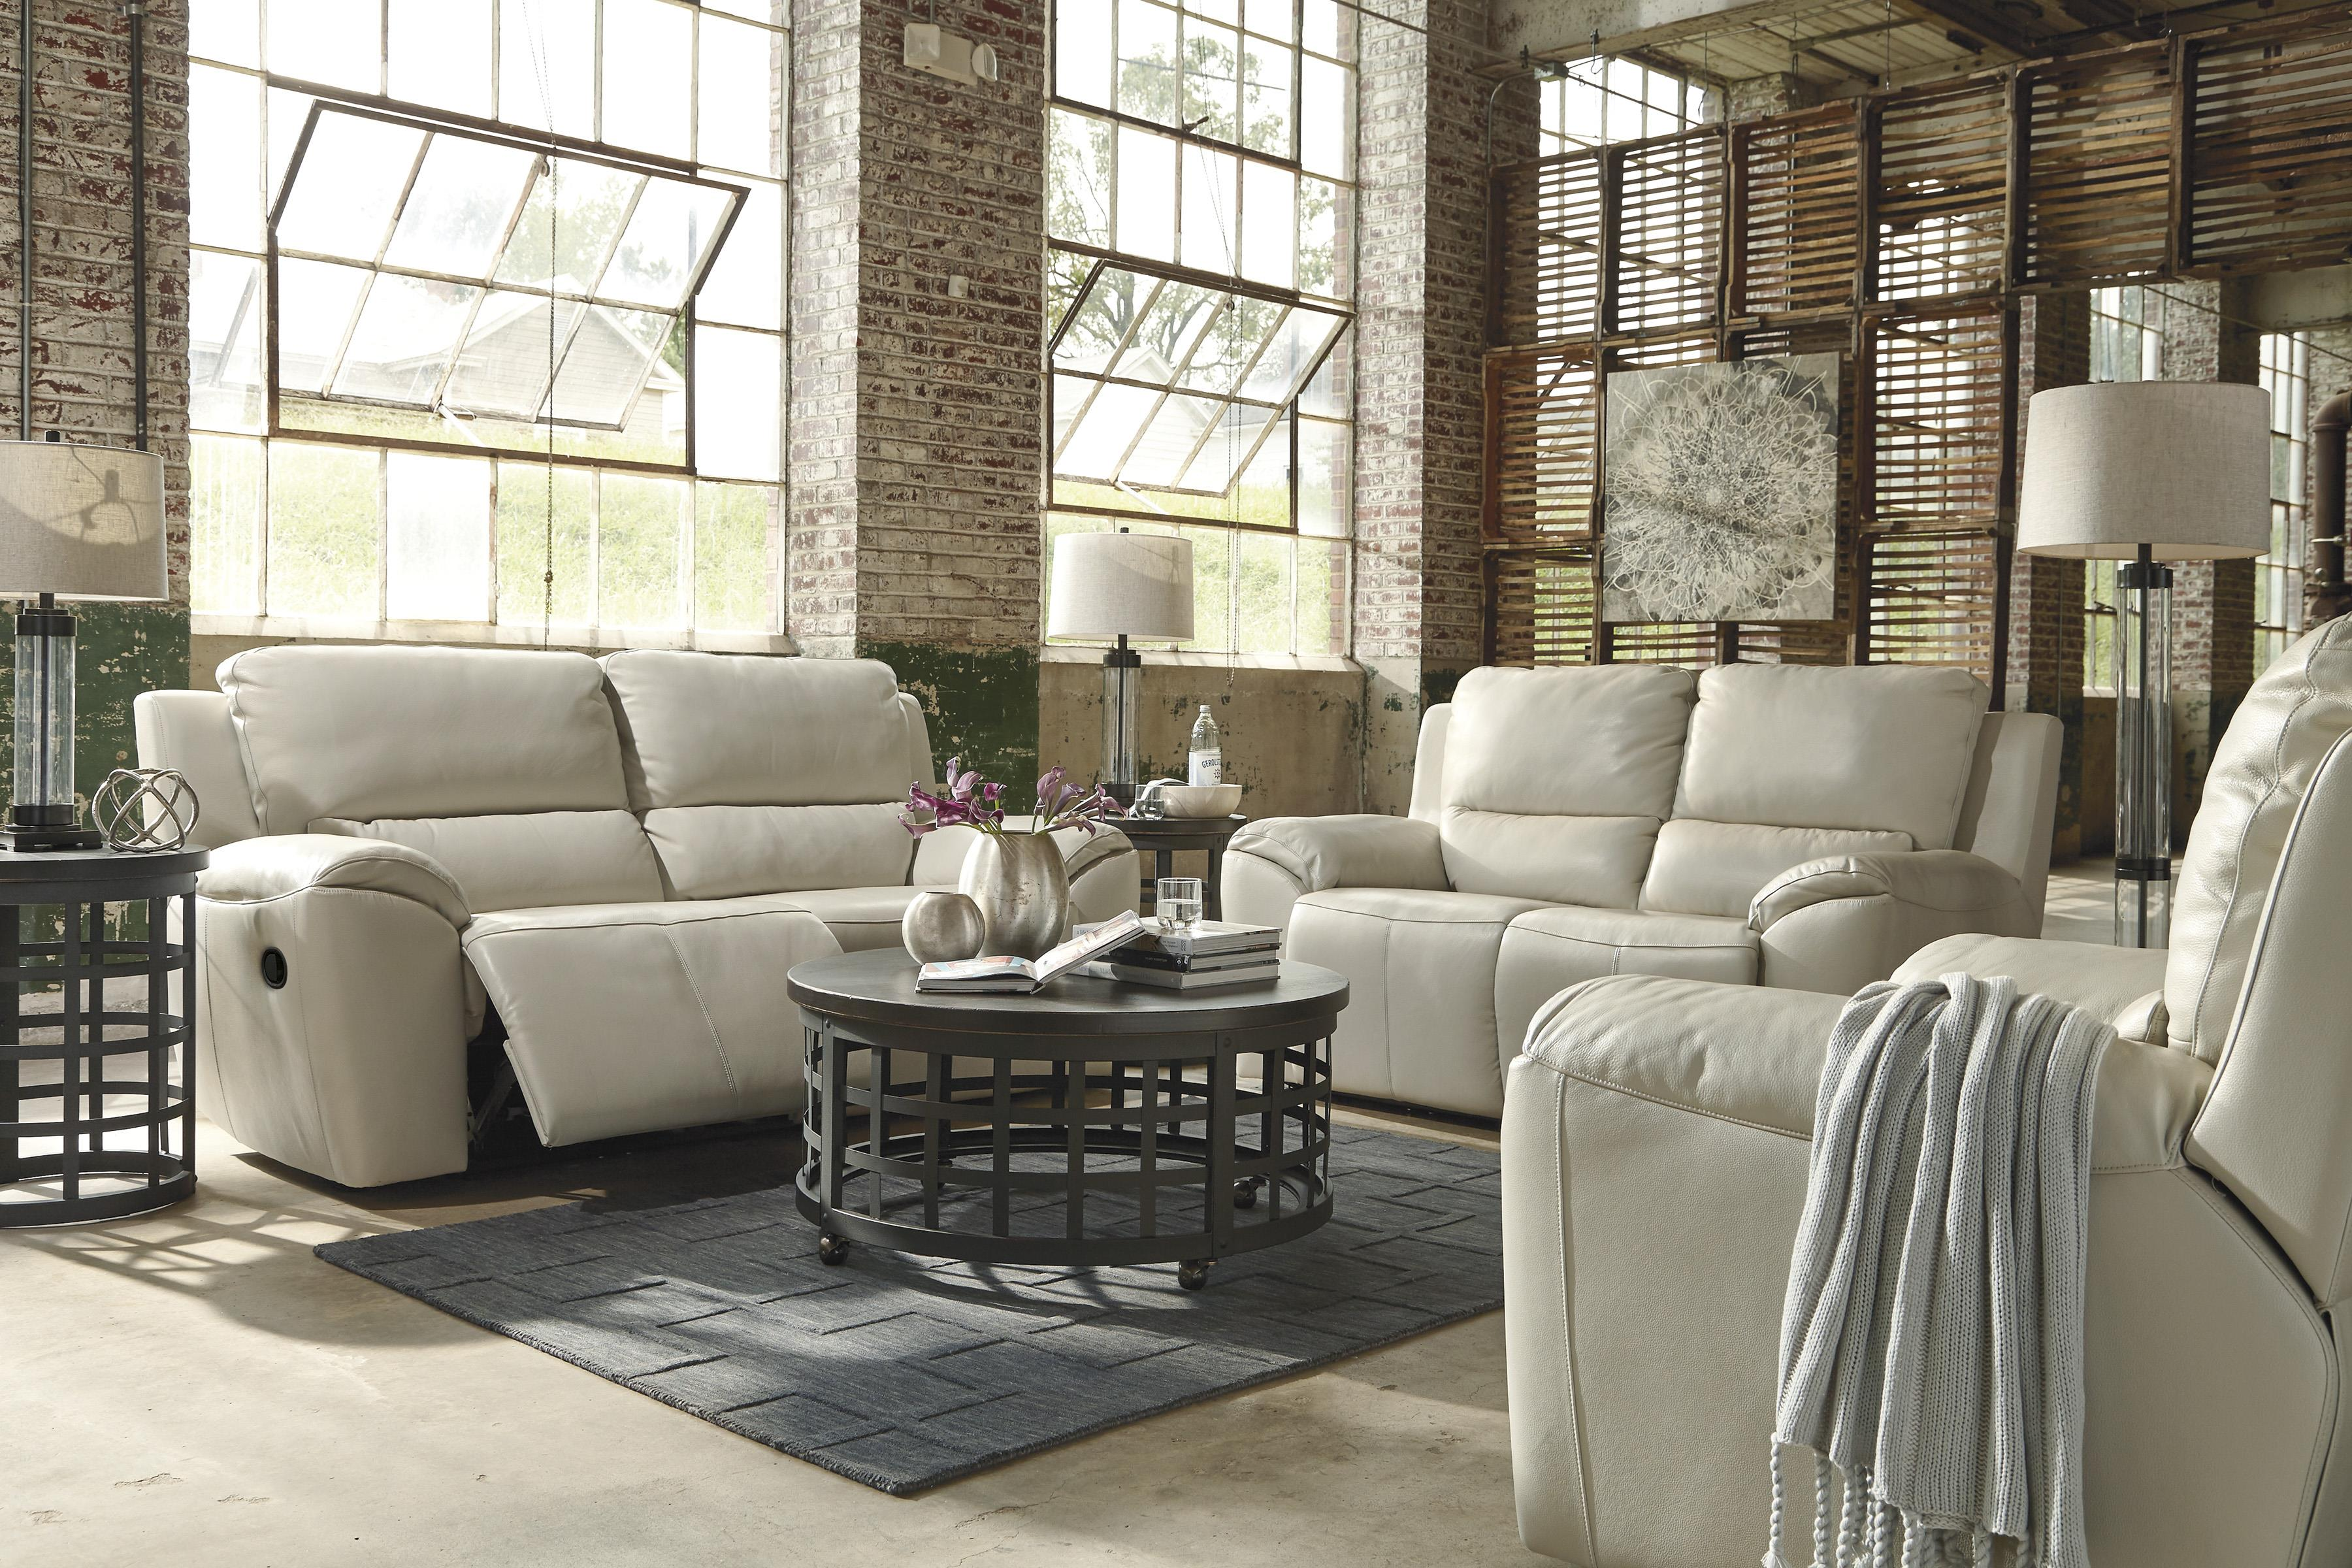 piece collections couch rotmans worcester providence small england couches and cuddler boston new item furniture ma ri sectional right with lsg sofa patina